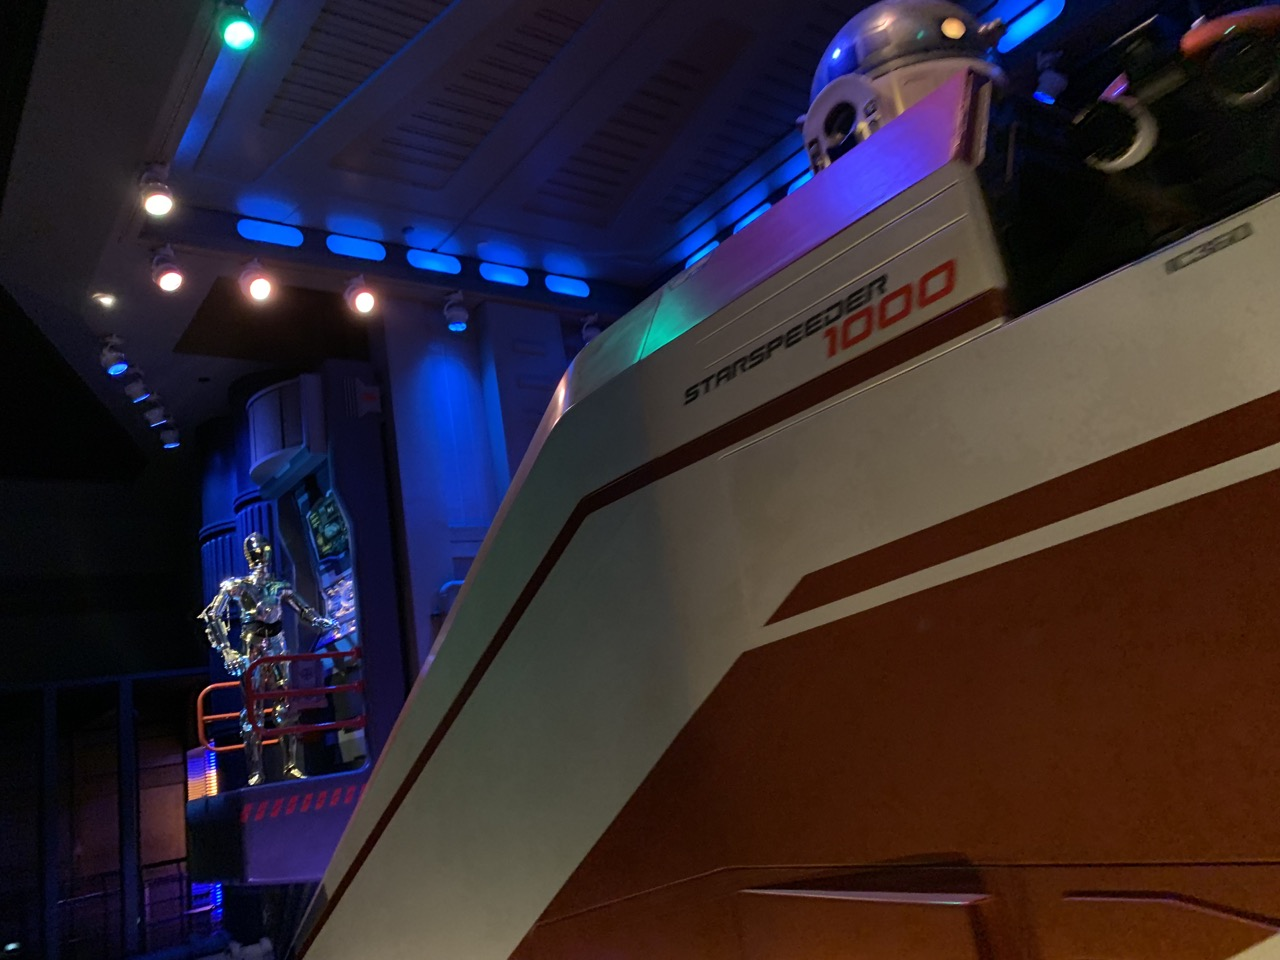 disney world trip report early summer 2019 day two 25 star tours.jpeg